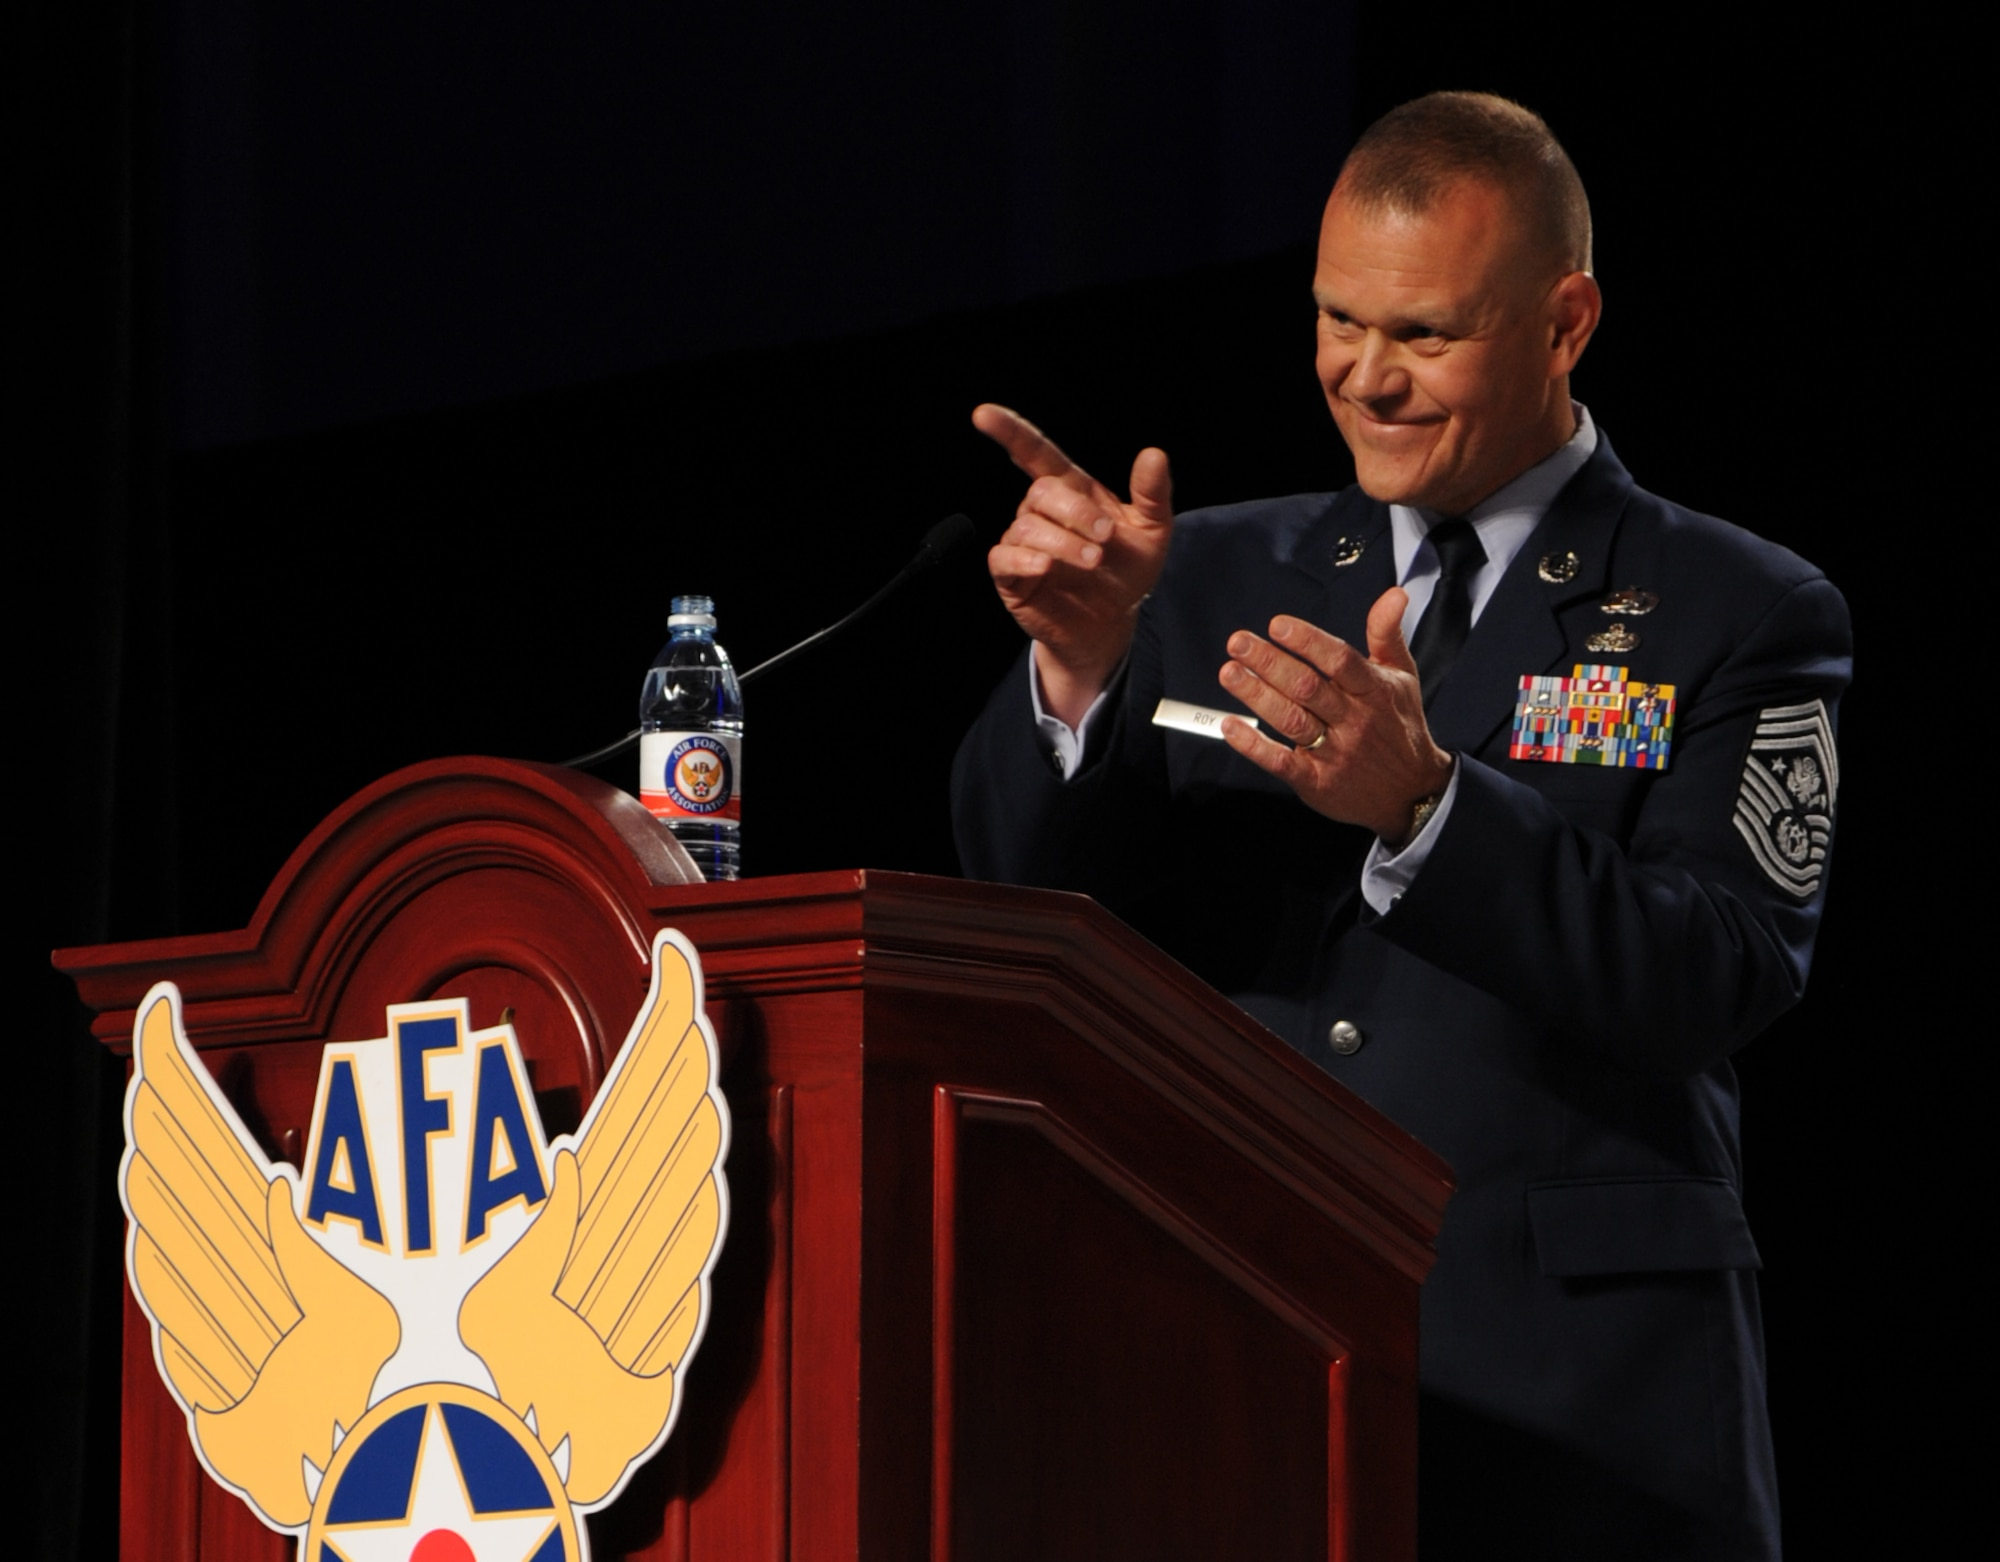 Chief Master Sgt. of the Air Force James A. Roy speaks during a banquet for the 12 Outstanding Airmen of the Year at the 2012 Air Force Association's Air and Space Conference and Technology Exposition in Washington, D.C., Sept. 17, 2012. Roy represents the highest enlisted level of leadership and, as such, provides direction for the enlisted force and represents their interests. (U.S. Air Force photo/Airman 1st Class Aaron Stout)